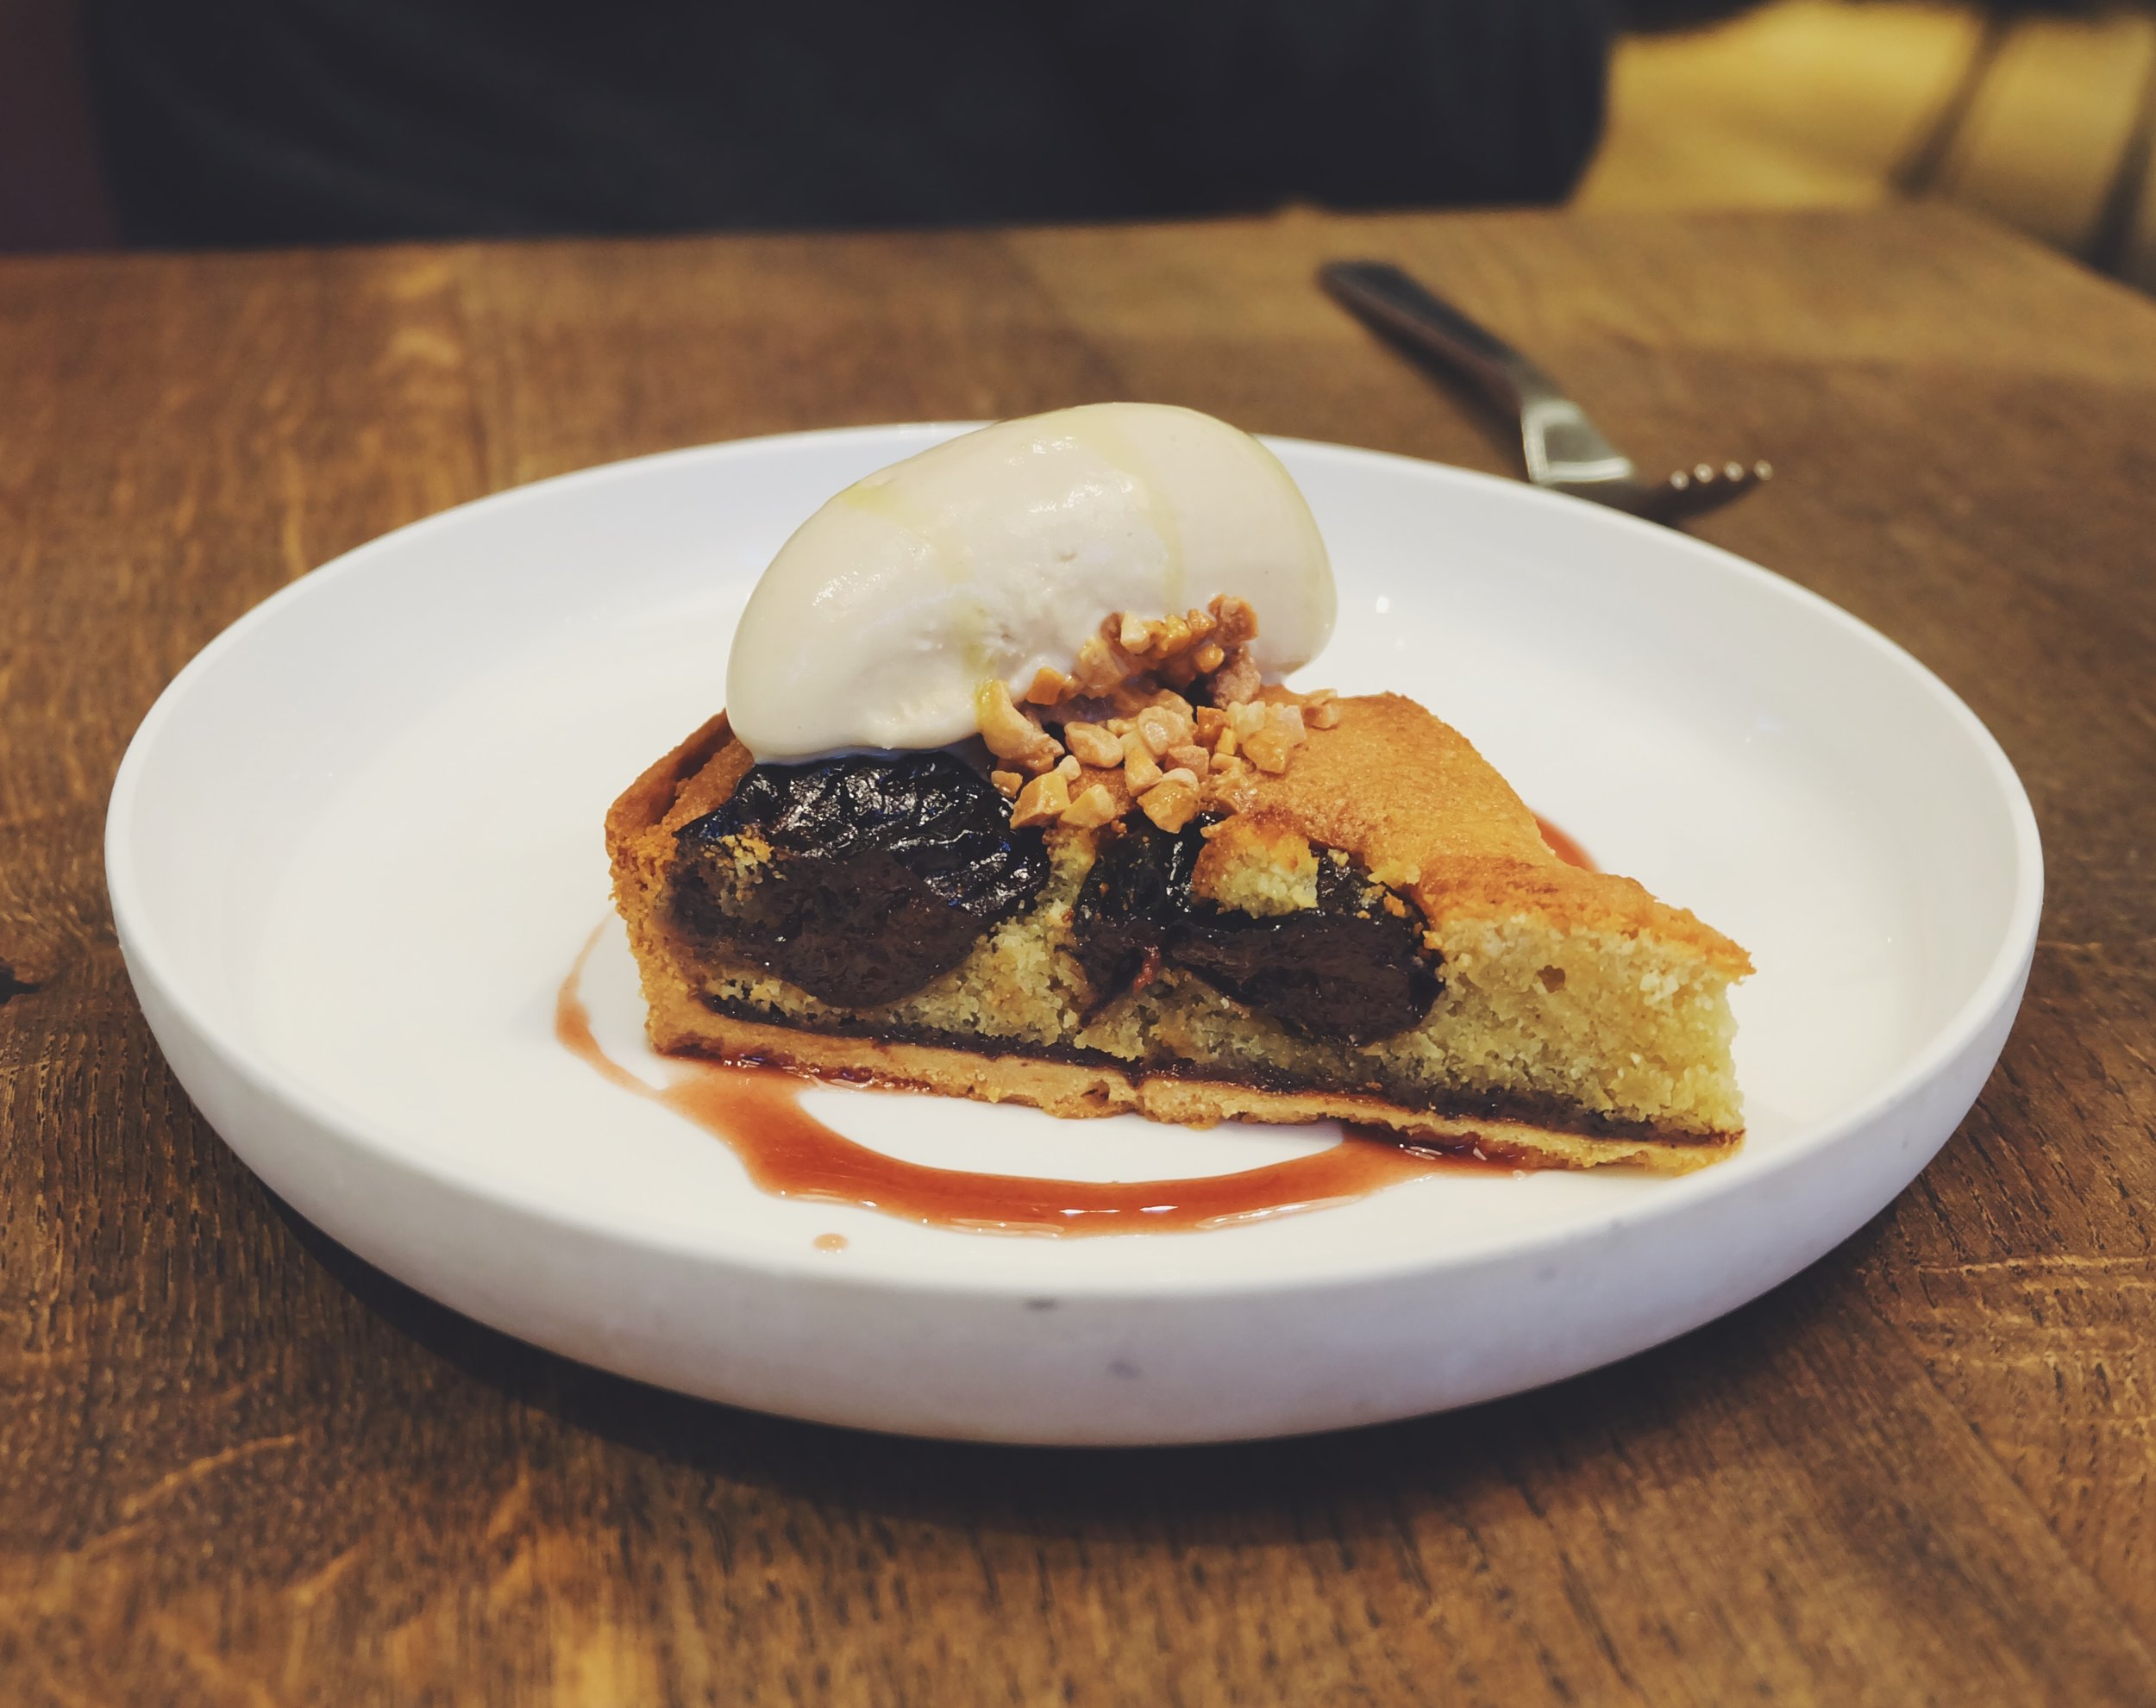 Prune and armagnac tart with bay leaf ice cream